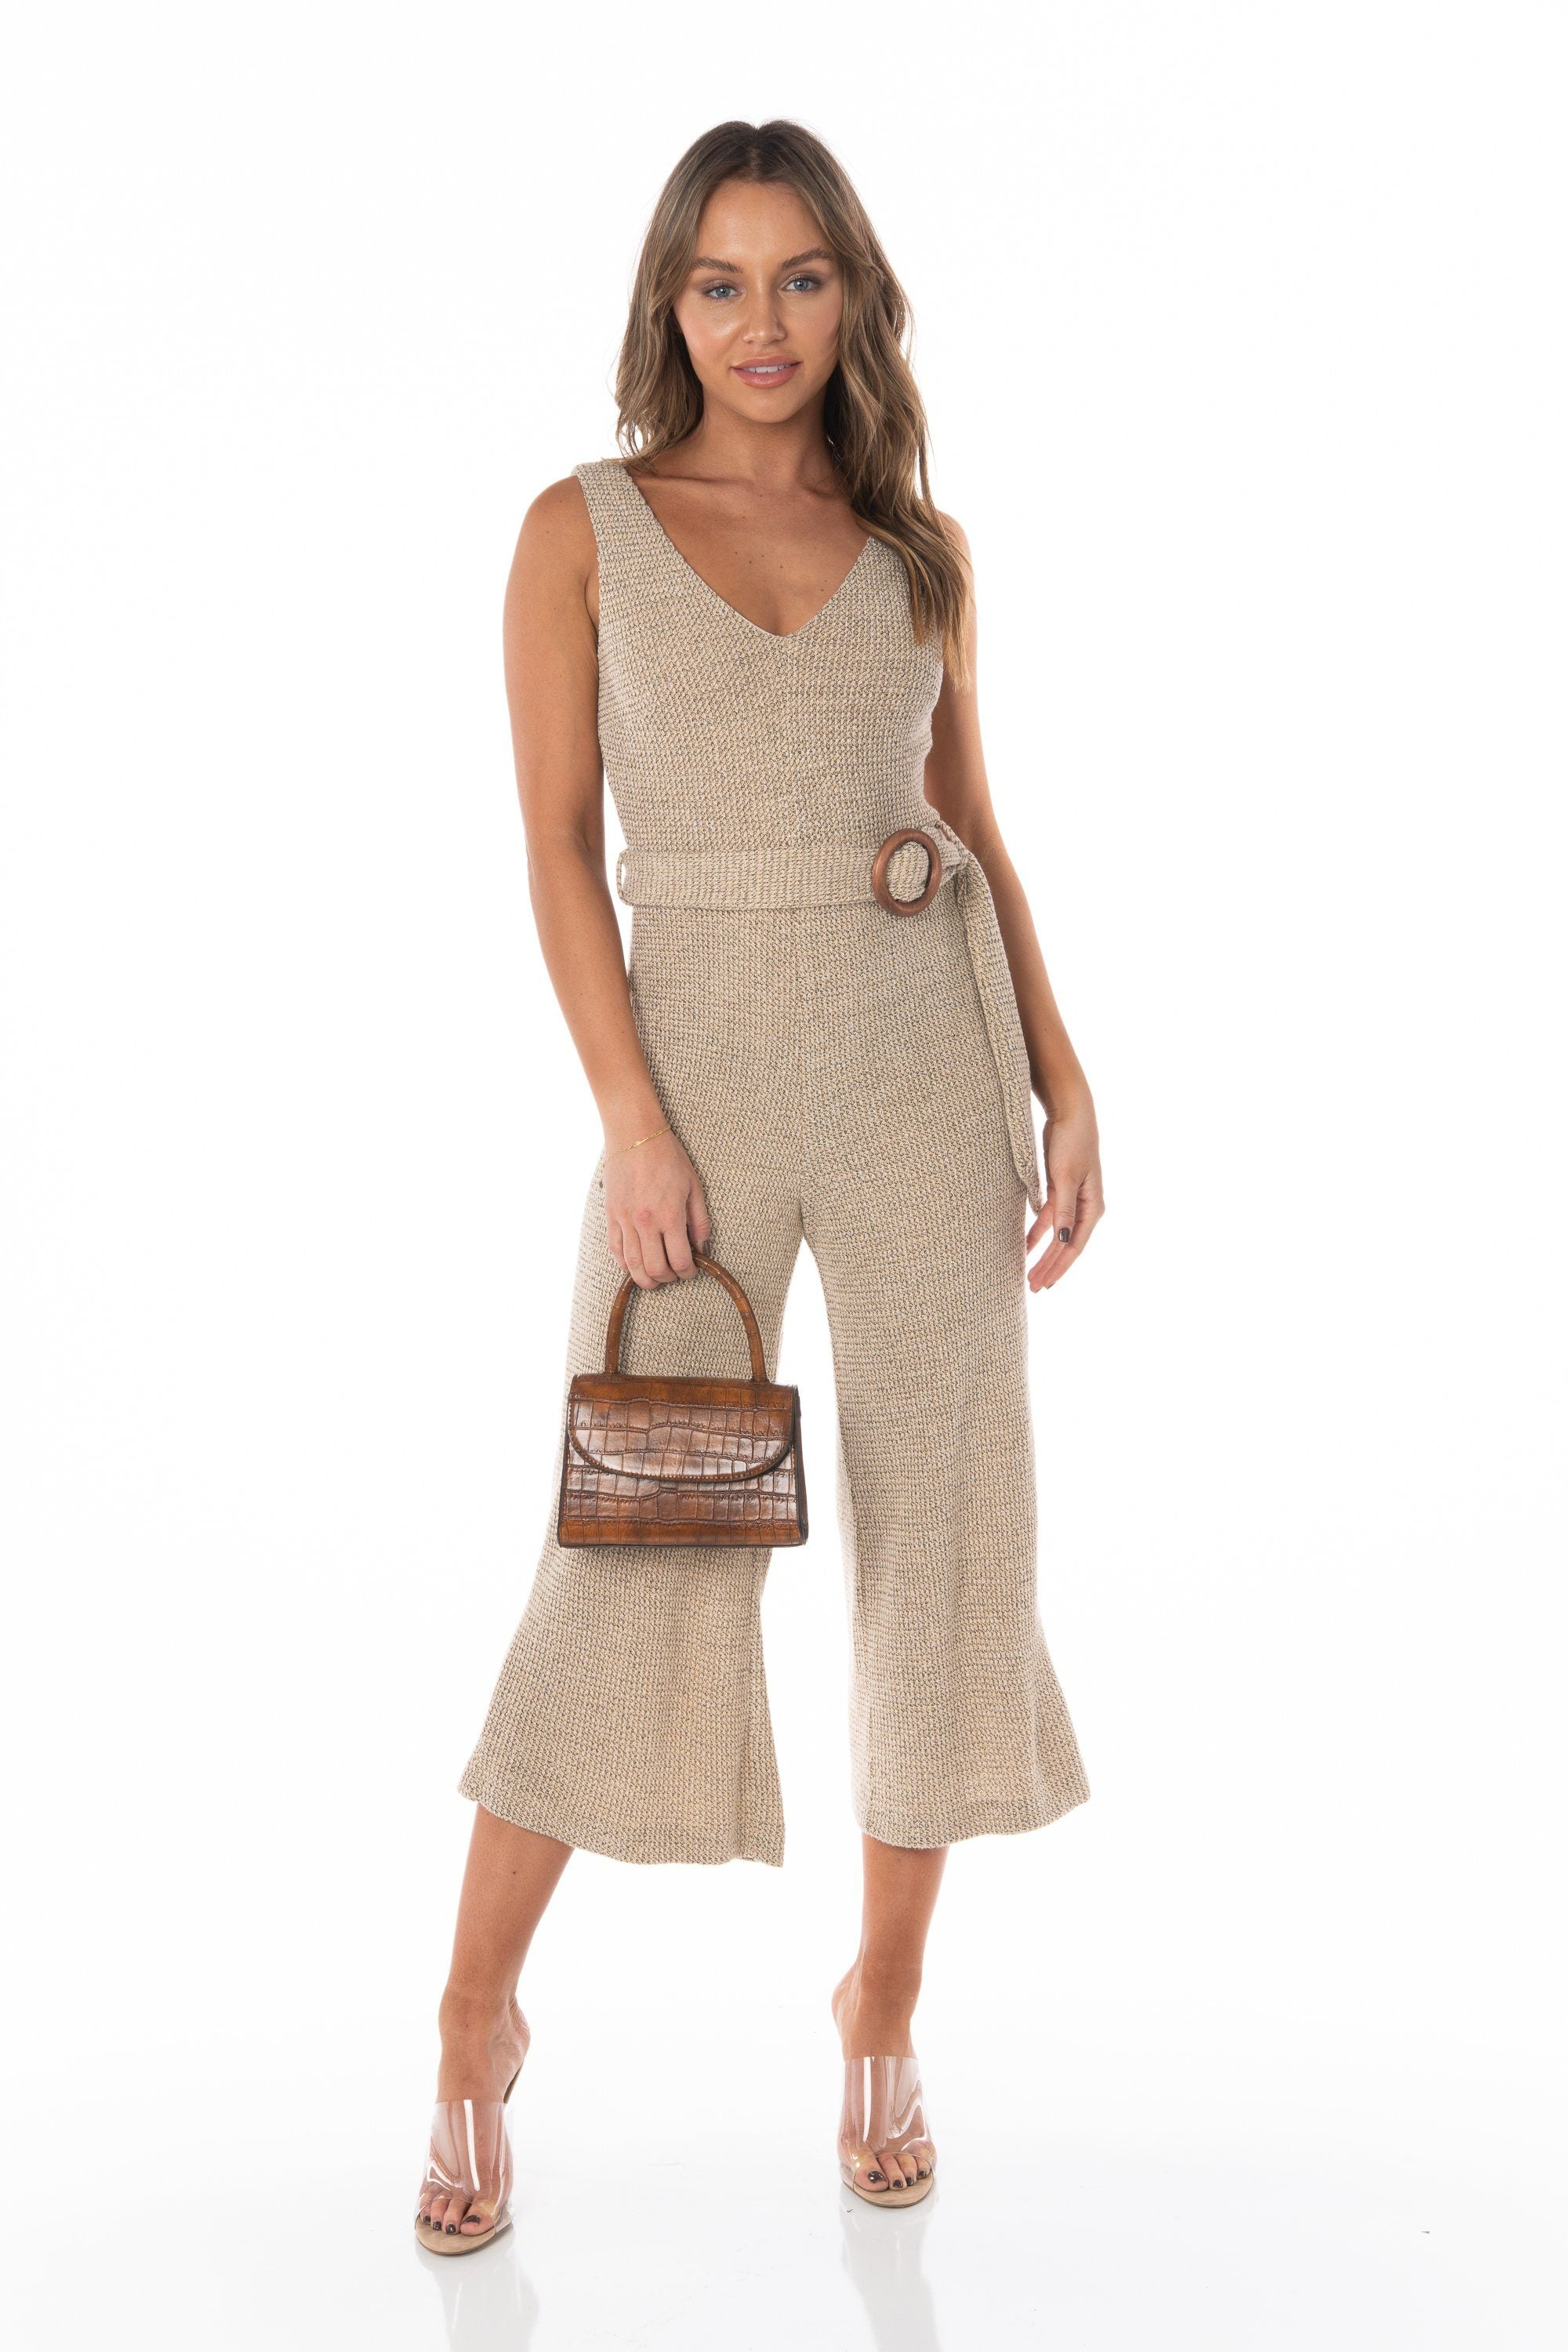 Bi-Coastal Woven Knit Beige Jumpsuit - FINAL SALE Rompers & Jumpers HYPEACH BOUTIQUE